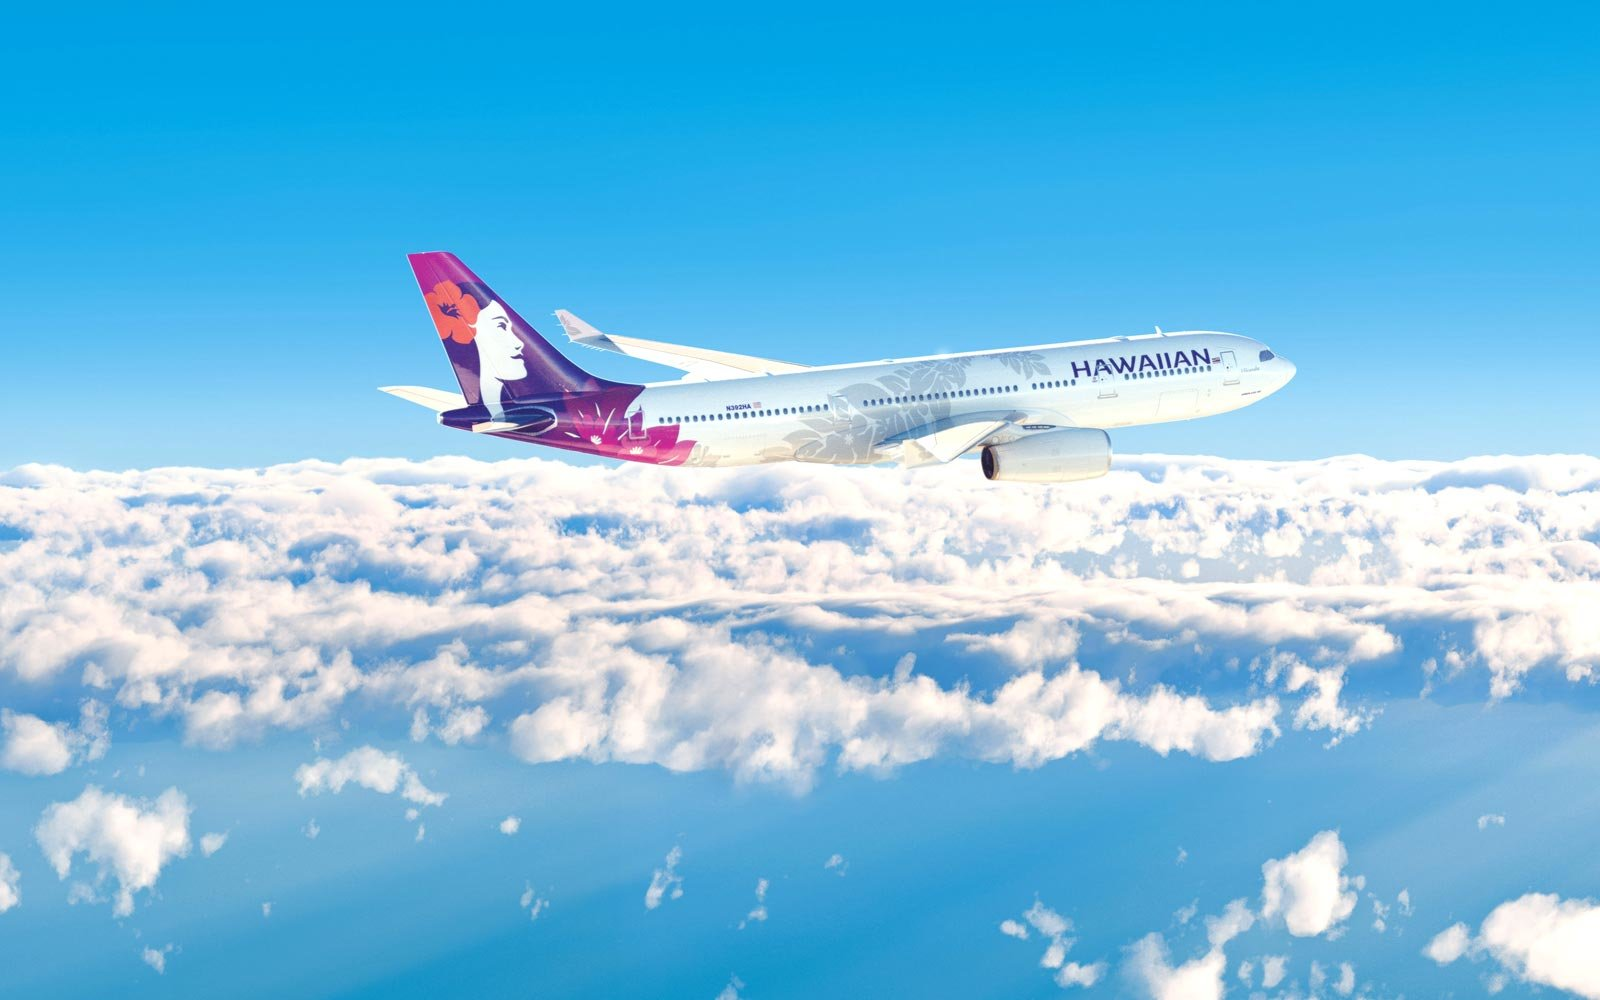 Hawaiian Airlines plane in flight over clouds